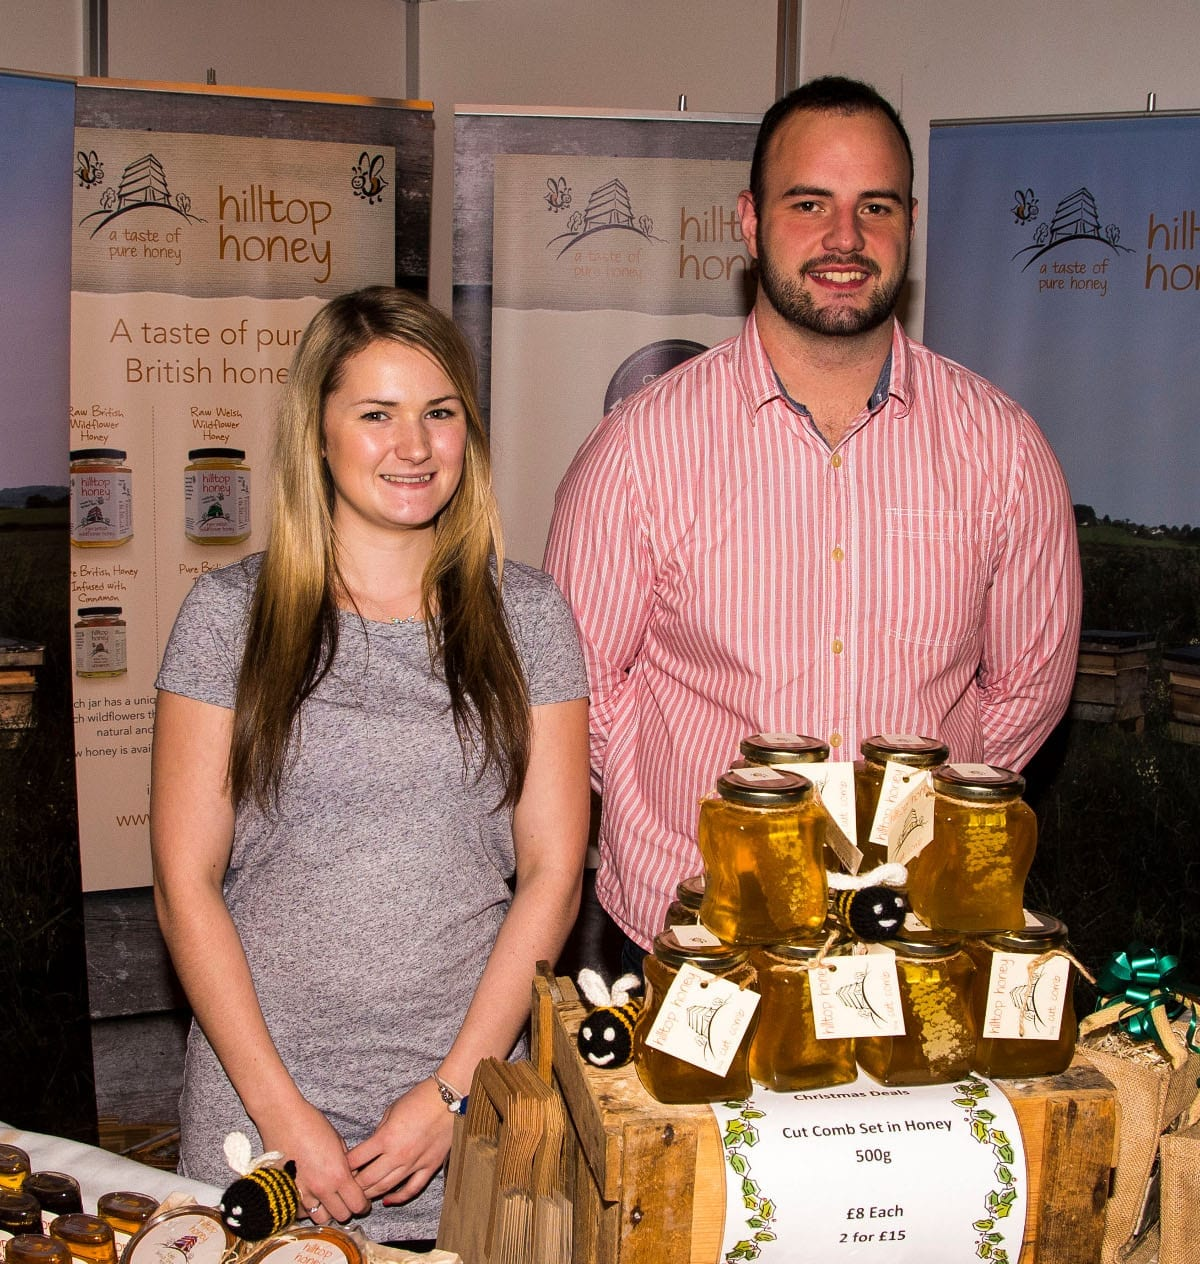 9.Scott Davies and Beth Lewis of Hilltop honey